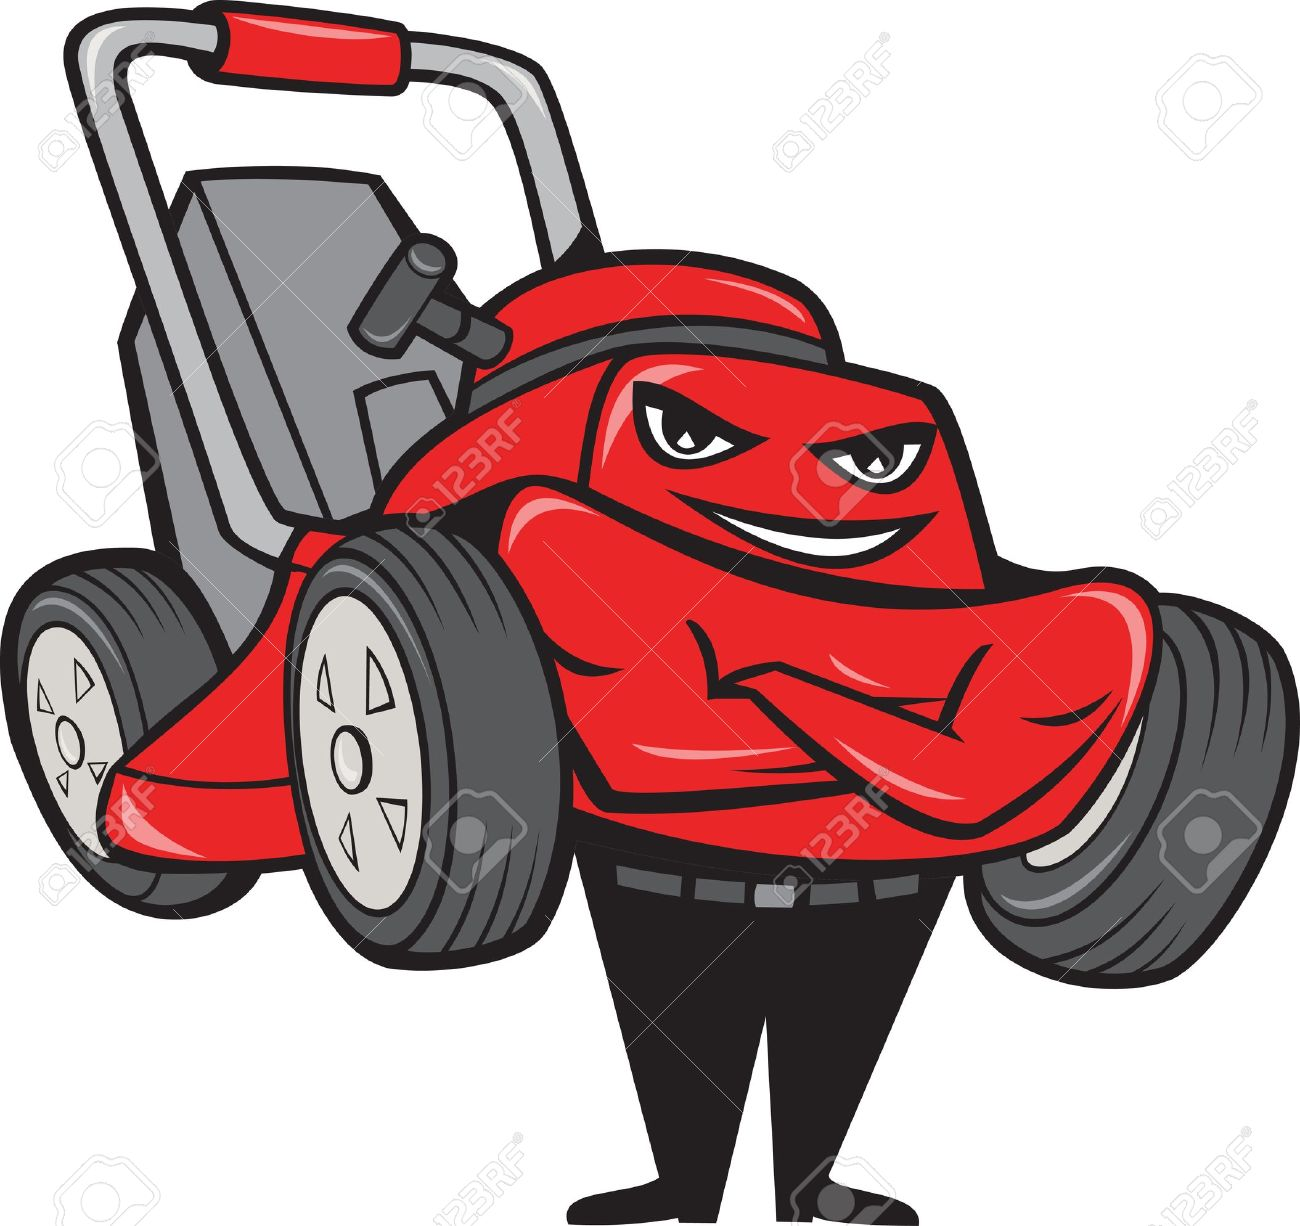 Illustration of lawn mower man smiling standing with arms folded facing front done in cartoon style on isolated white background. Stock Vector - 16263307